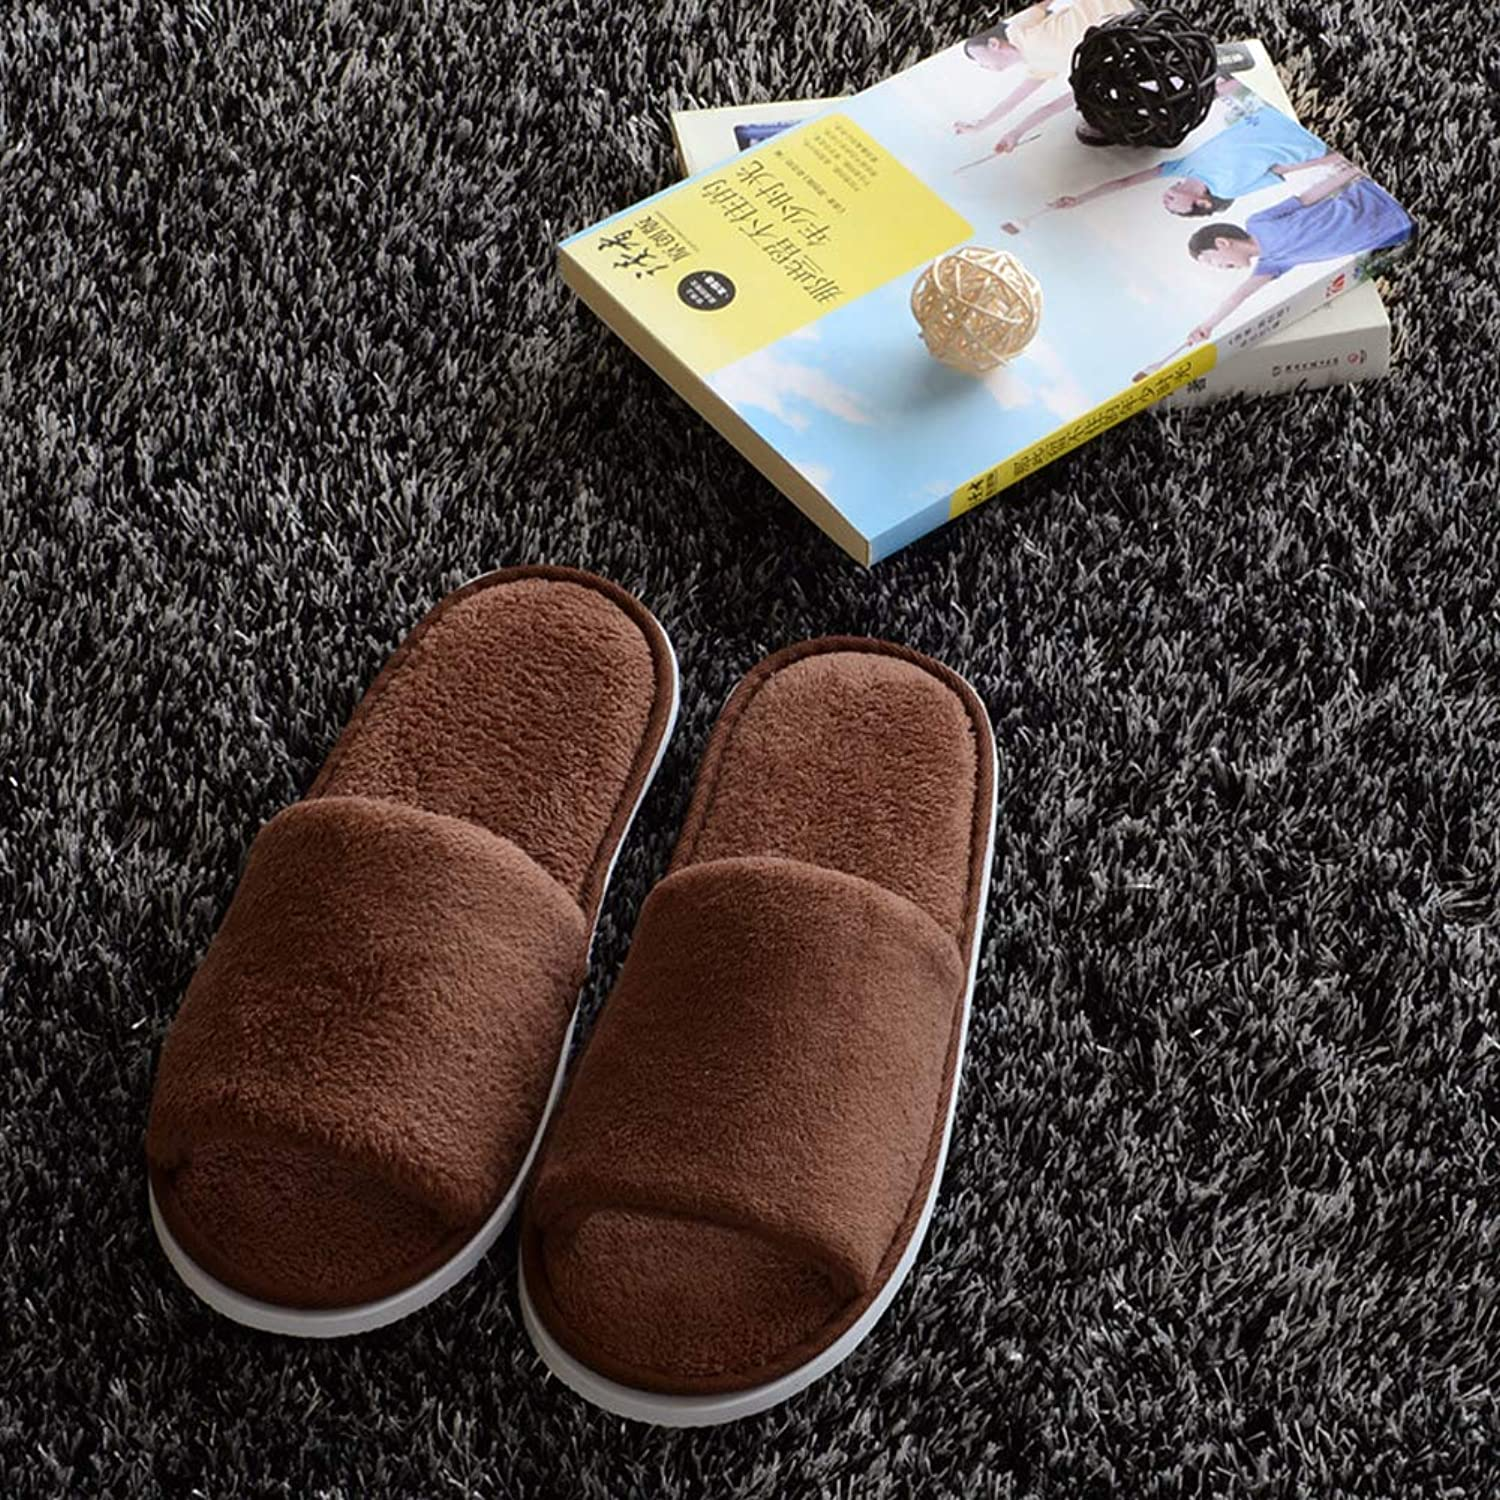 Hotel Disposable Slippers Open Toe Spa Terry Guest shoes - Men Women Non-Slip Slippers,C,10Pair